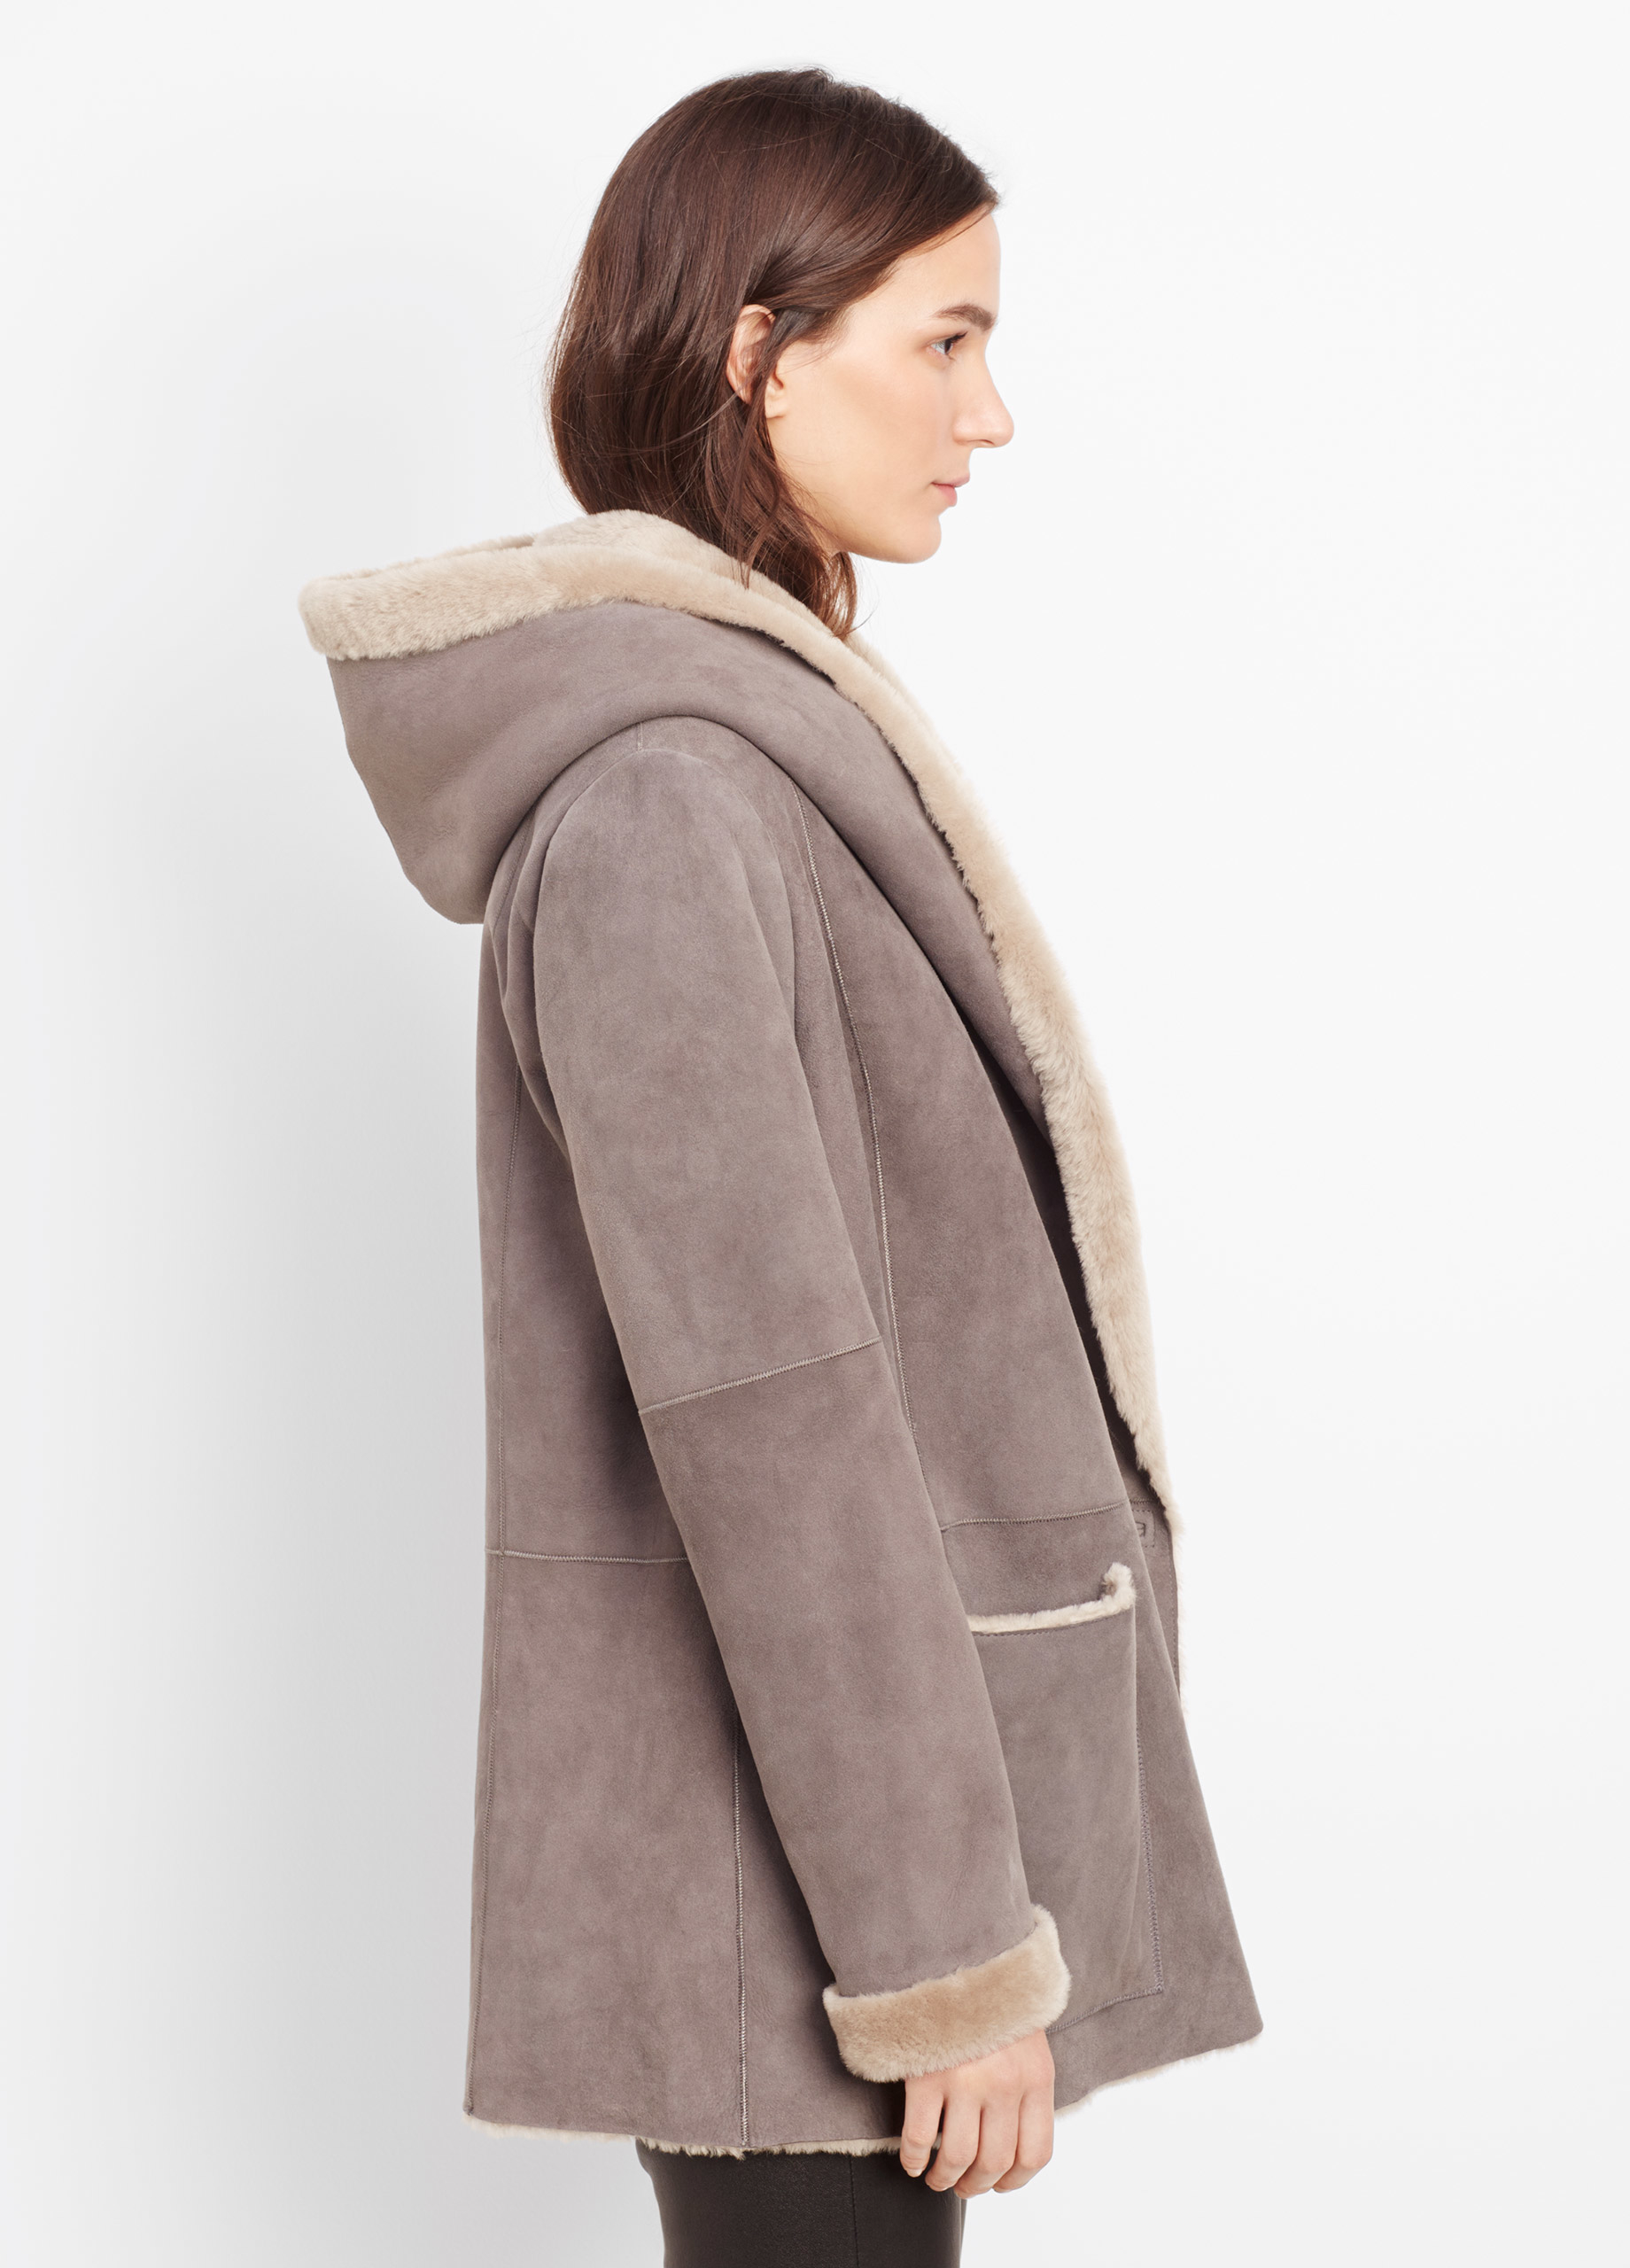 v vp shopbop drape drapes coat htm vince hooded